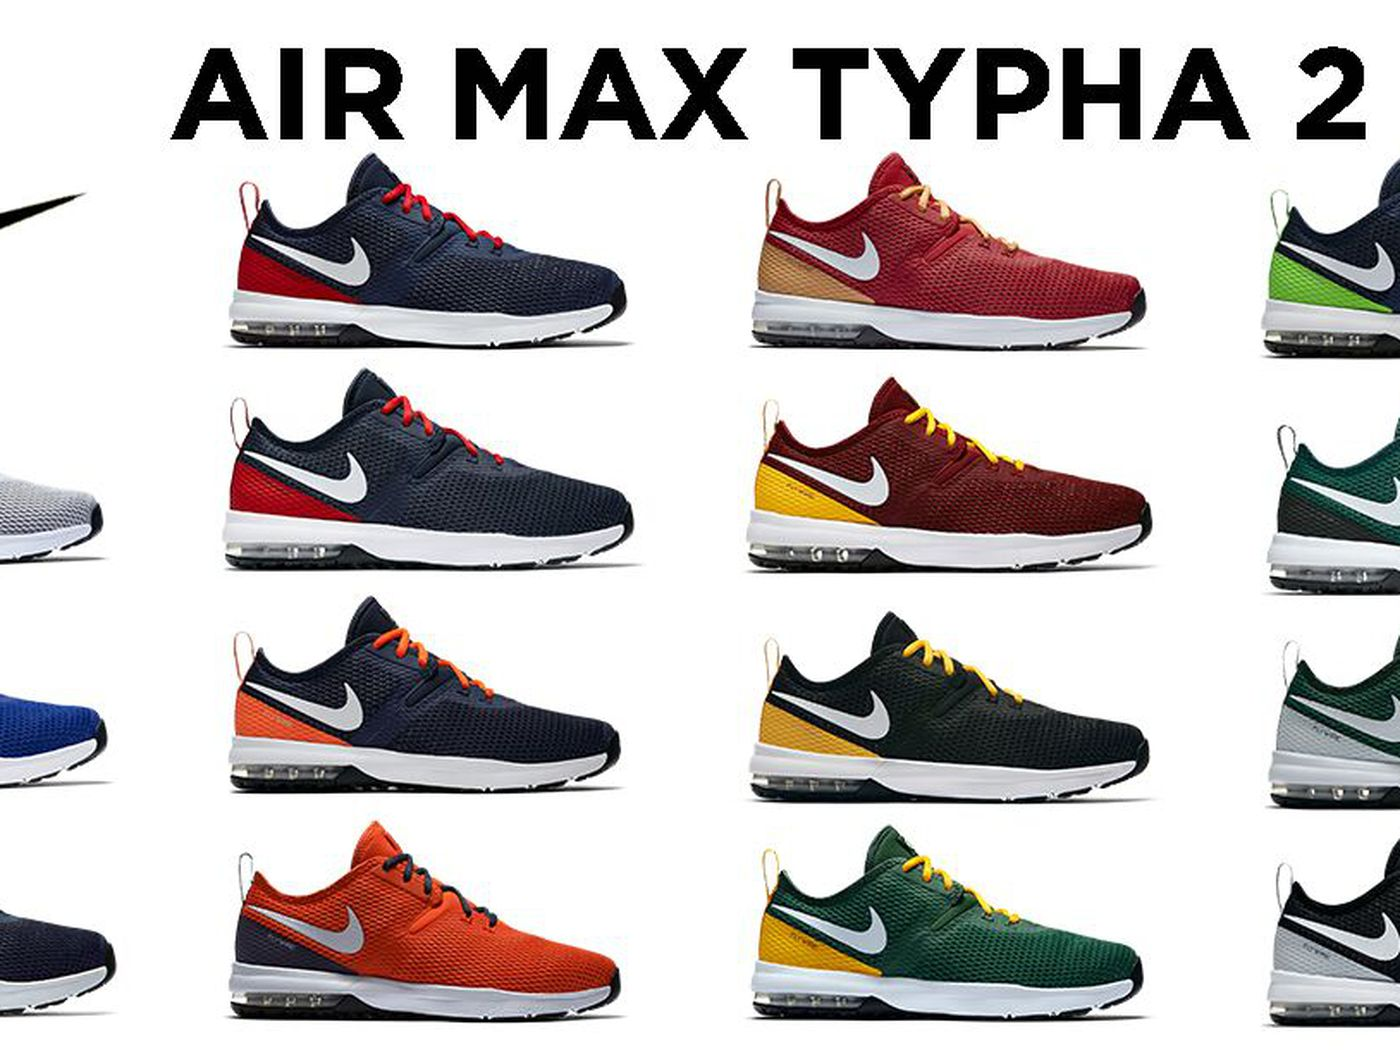 c3a8b1d07e225 Nike releases new NFL-themed Air Max Typha 2 shoe collection - SBNation.com